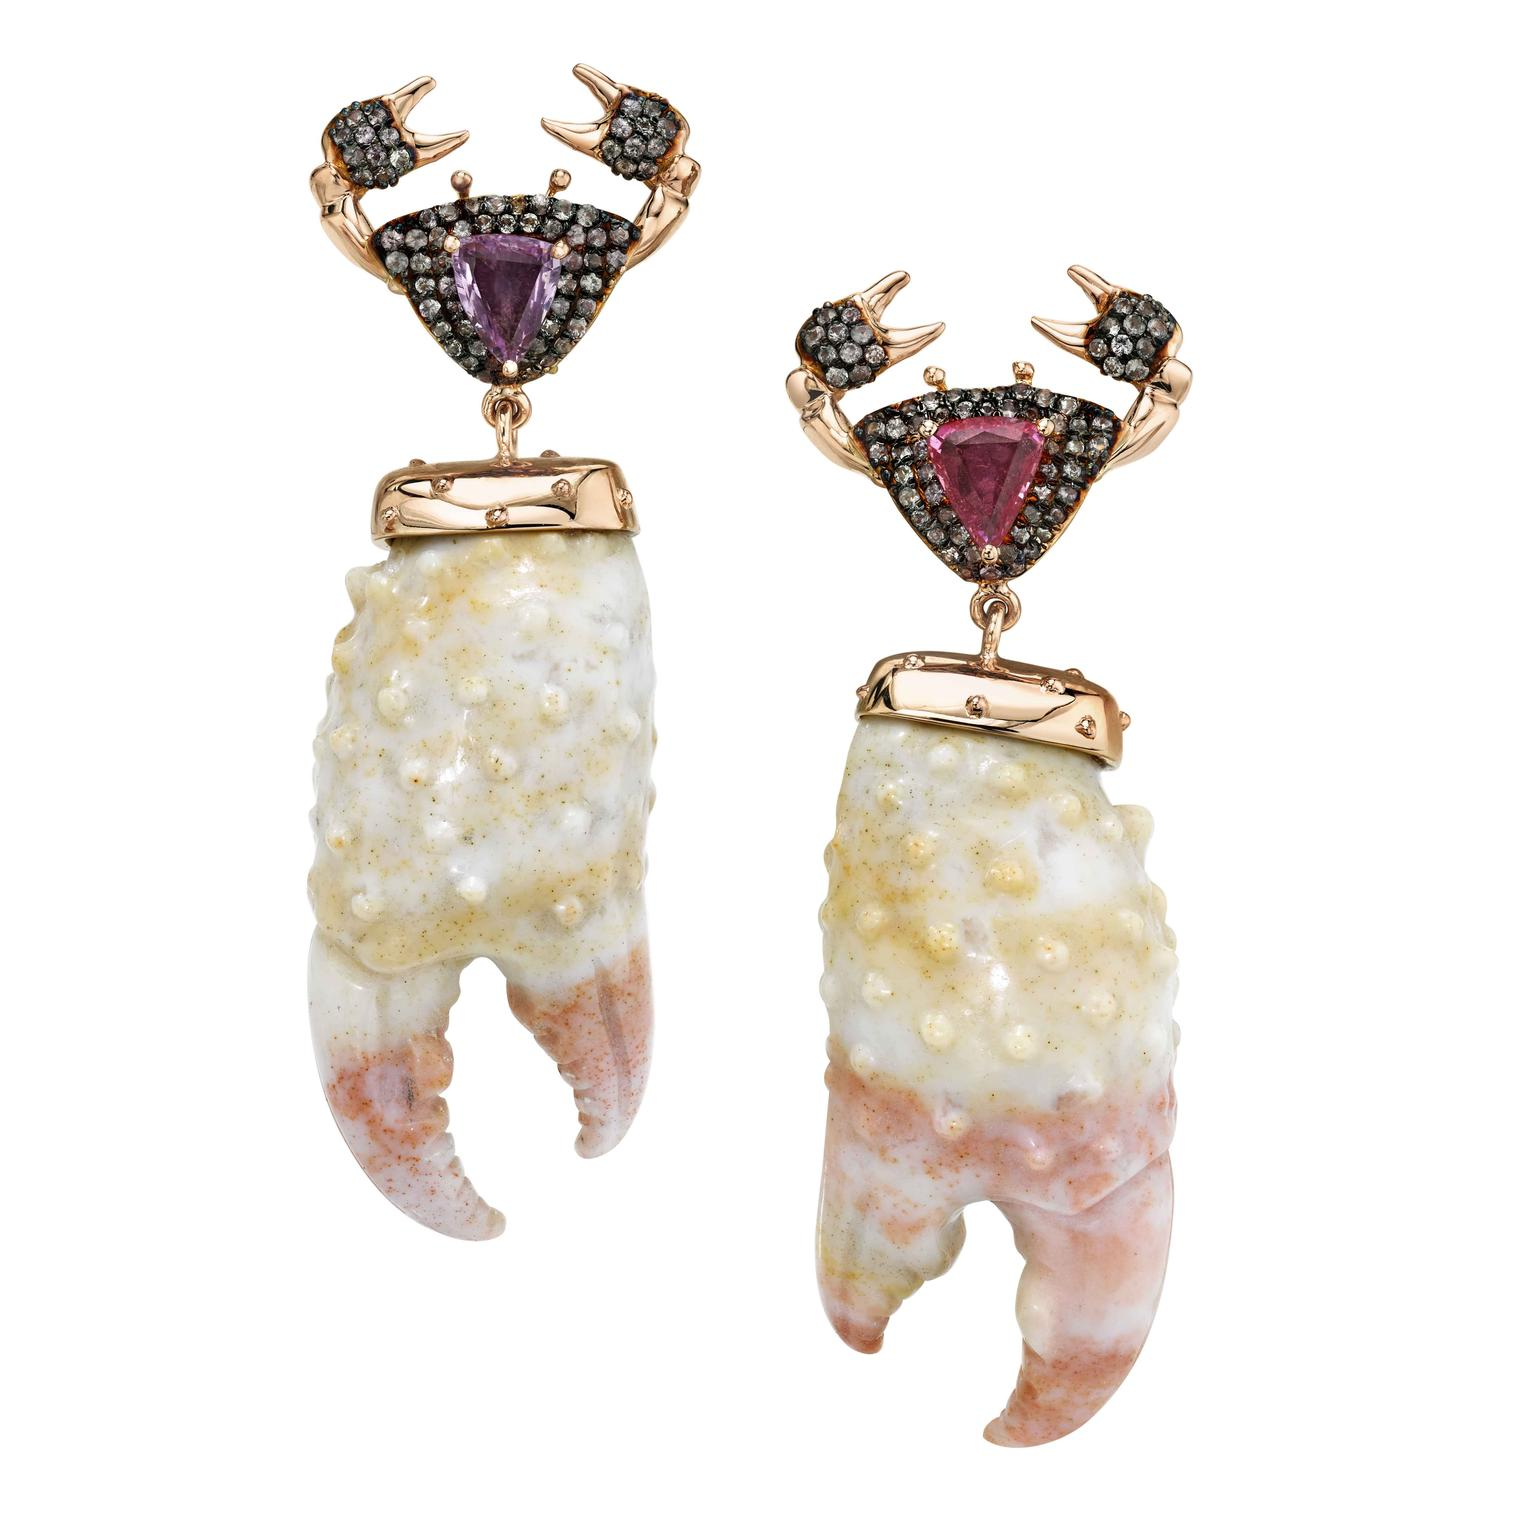 Attina earrings from Daniela Villegas